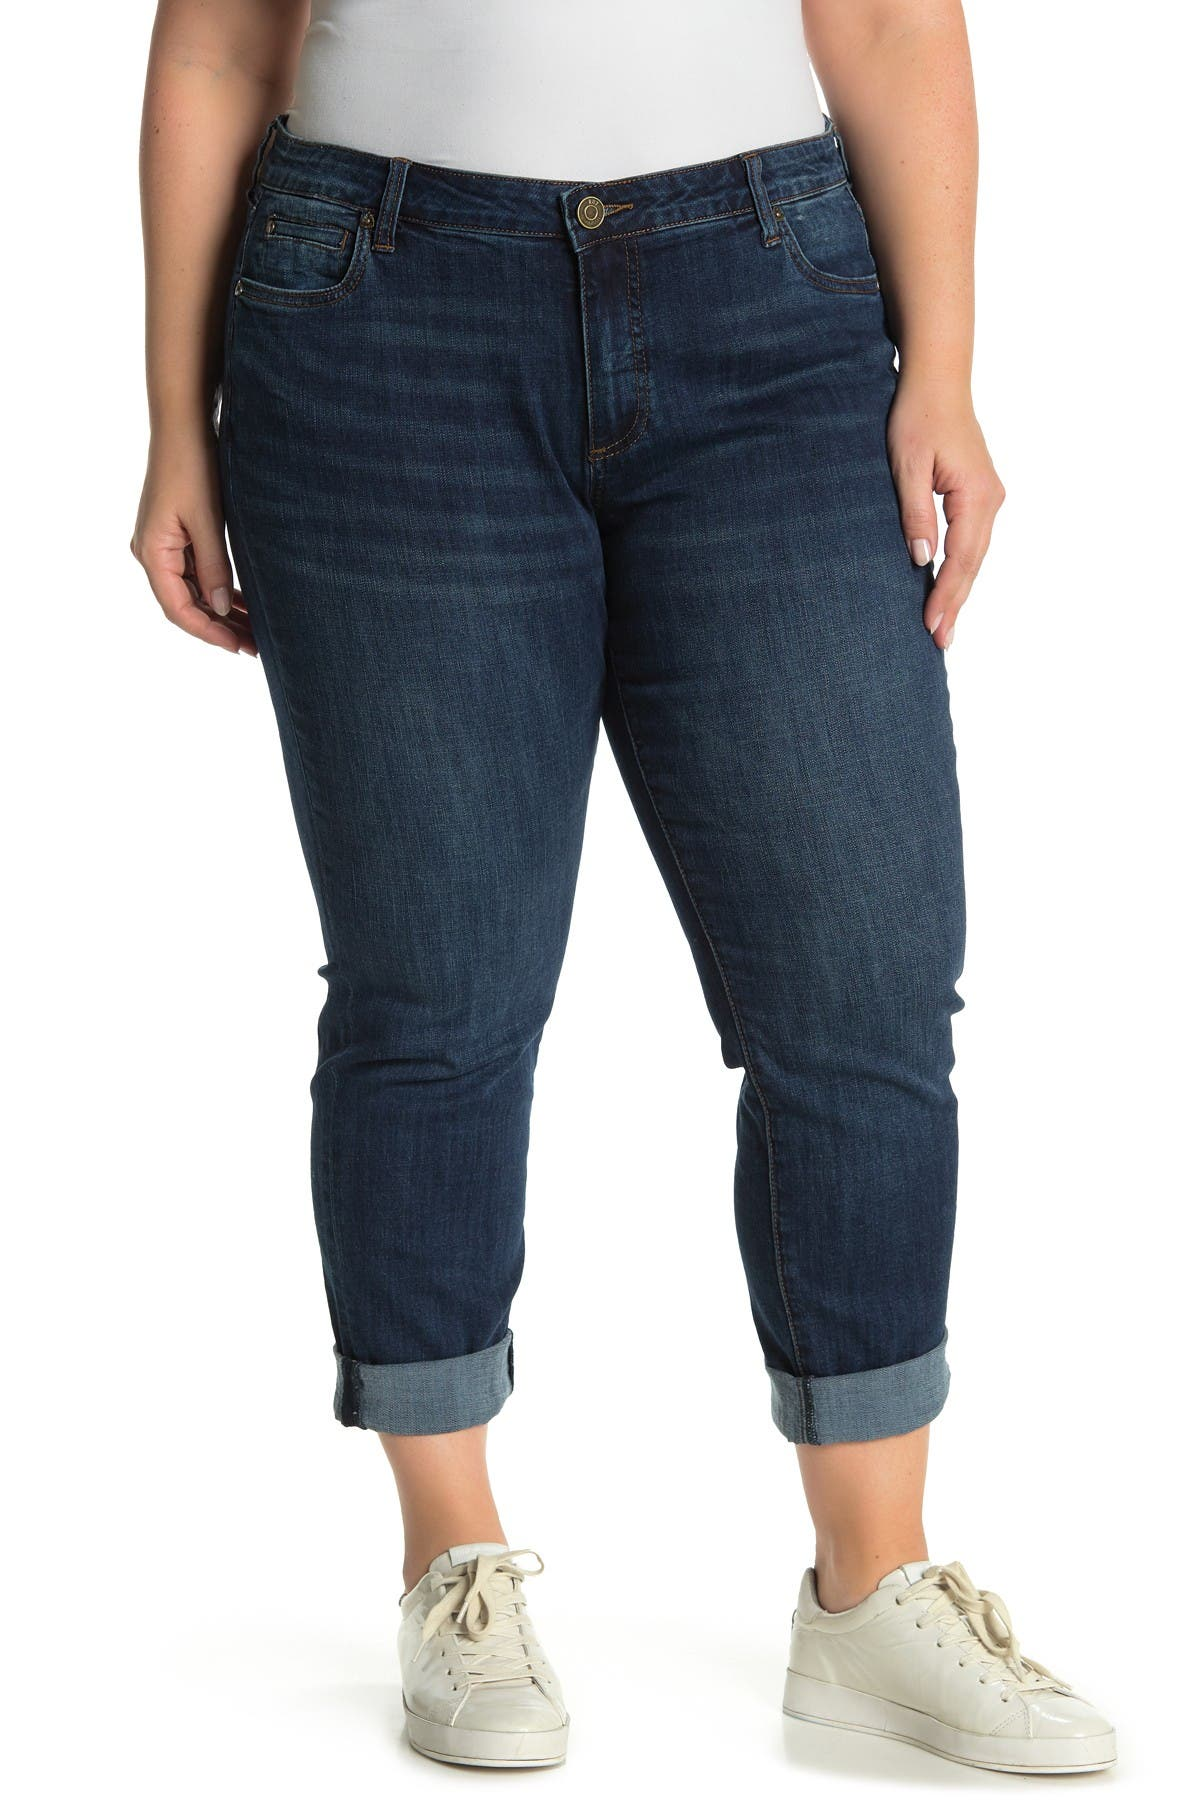 Image of KUT from the Kloth Katy Rolled Hem Boyfriend Jeans